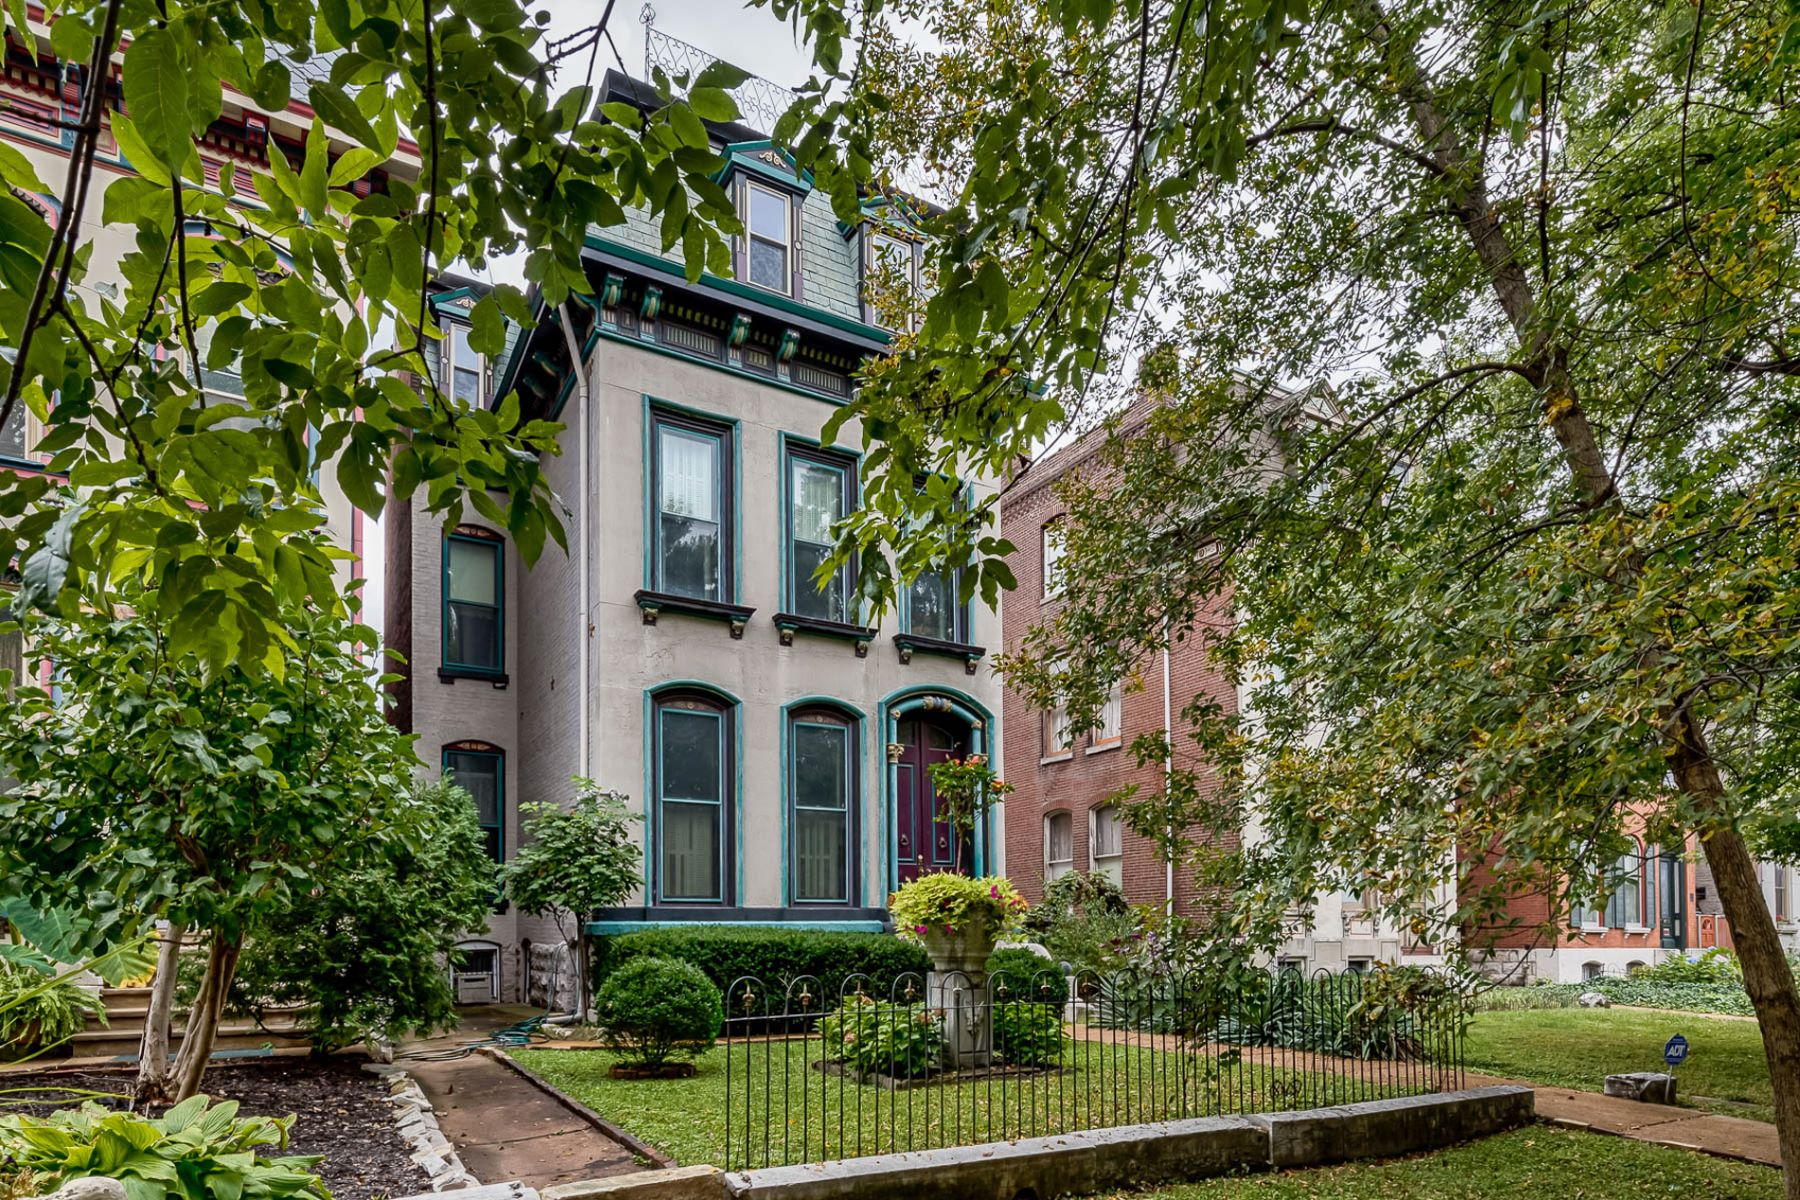 Additional photo for property listing at Park Ave 2332 Park Ave St. Louis, Missouri 63104 United States